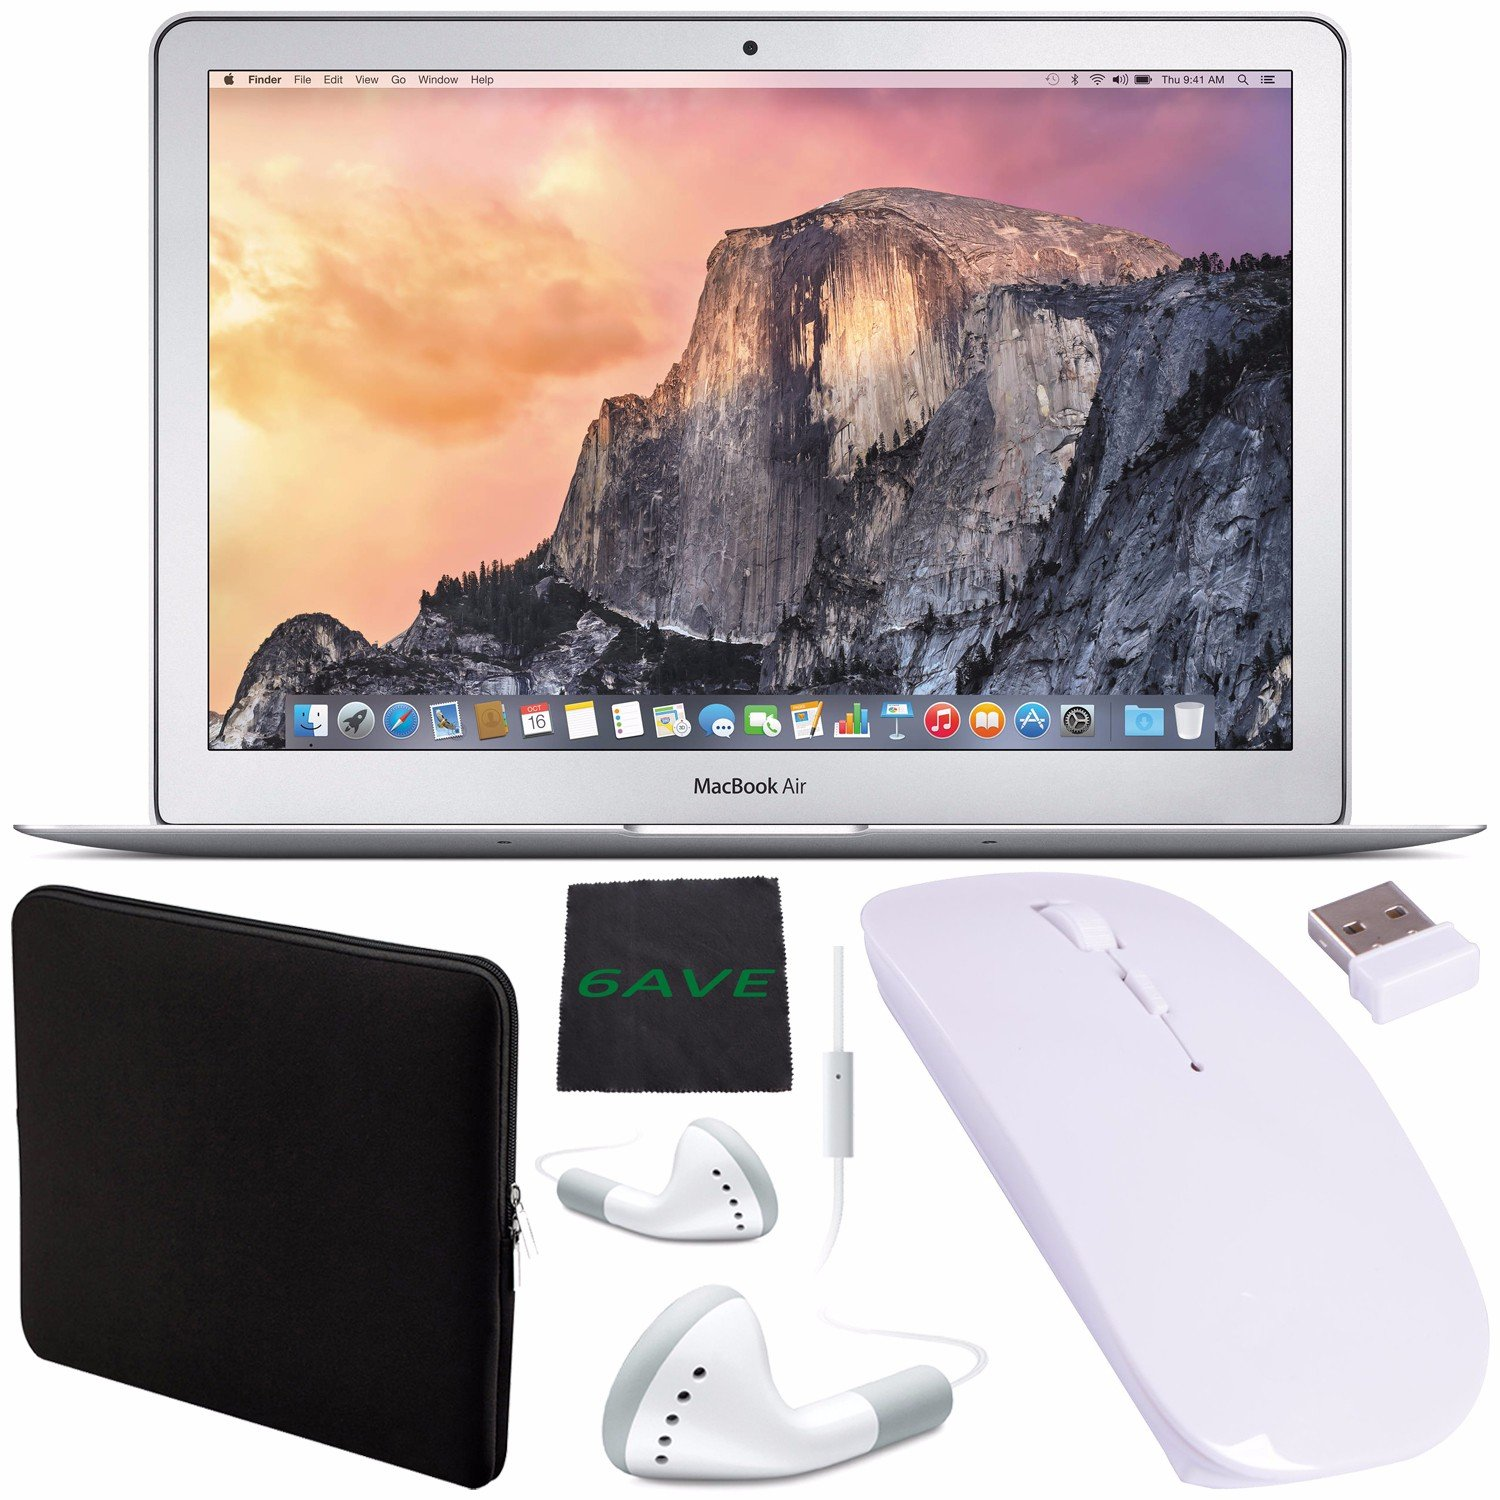 Apple 13.3'' MacBook Air Laptop Computer 256GB #MMGG2LL/A + White Wired Earbuds Headphones + Padded Case For Macbook + Fibercloth + Ultra-Slim 2.4 GHz Optical Wireless Mouse w/ USB Nano Receiver Bundle by 6Ave (Image #1)